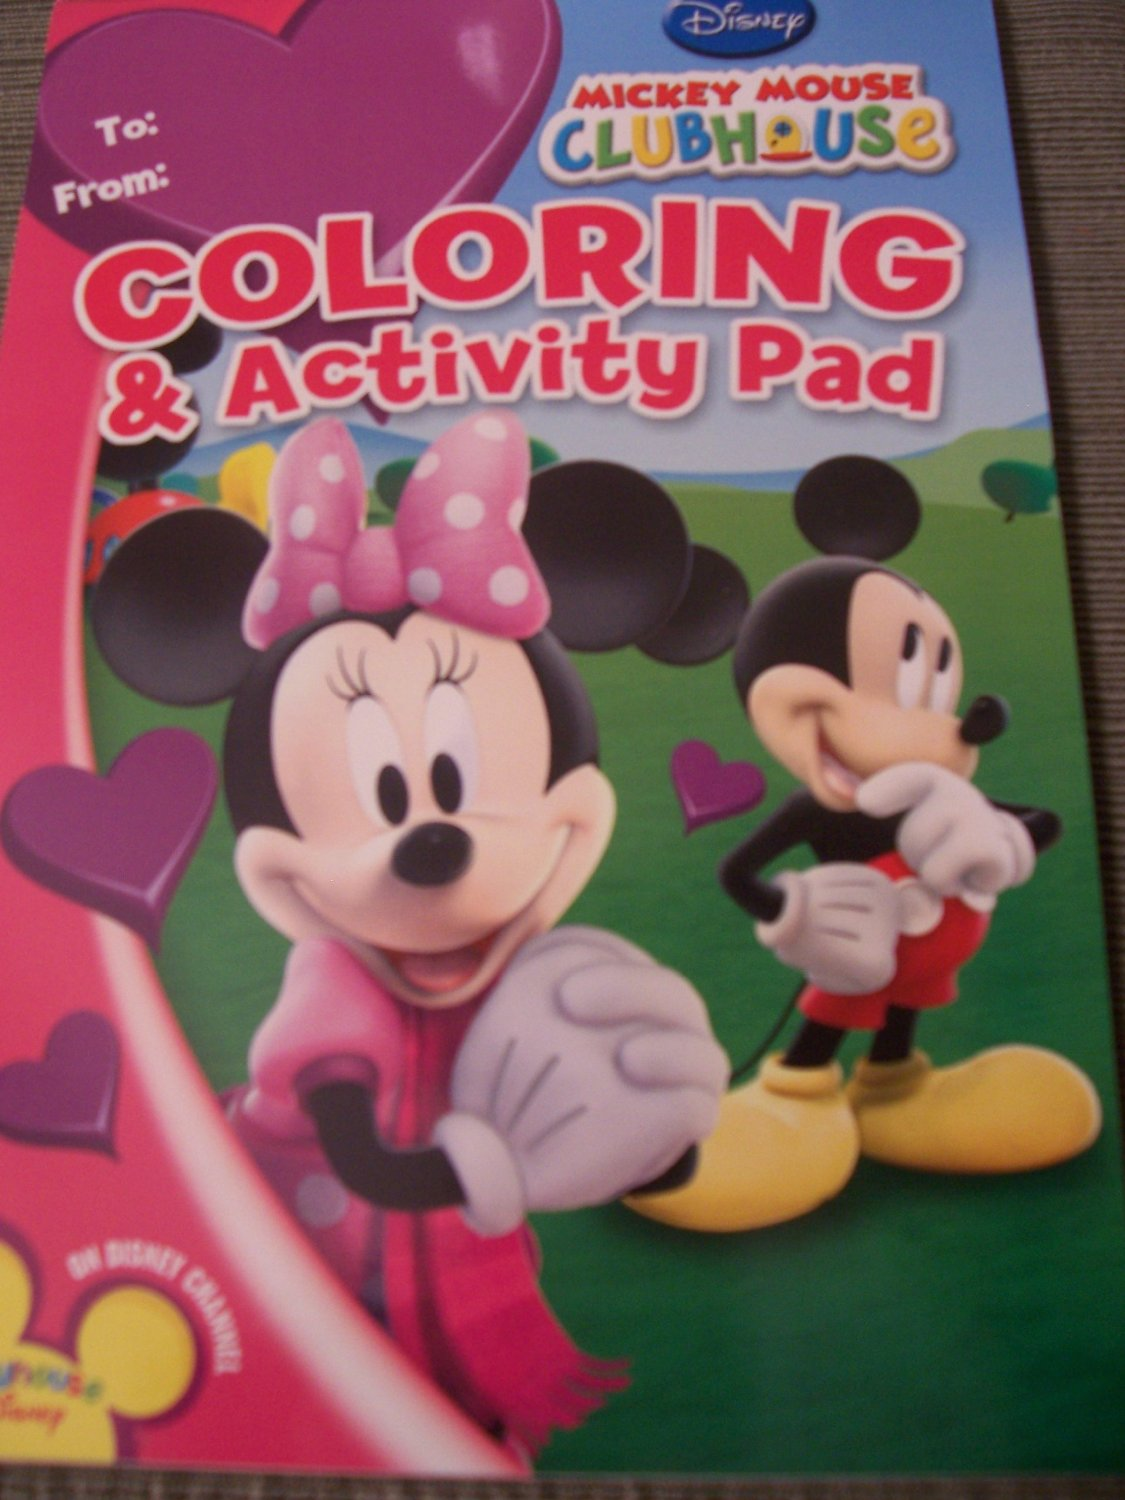 Disney Mickey Mouse Clubhouse Coloring & Activity Pad ~ Love with Mickey & Minnie